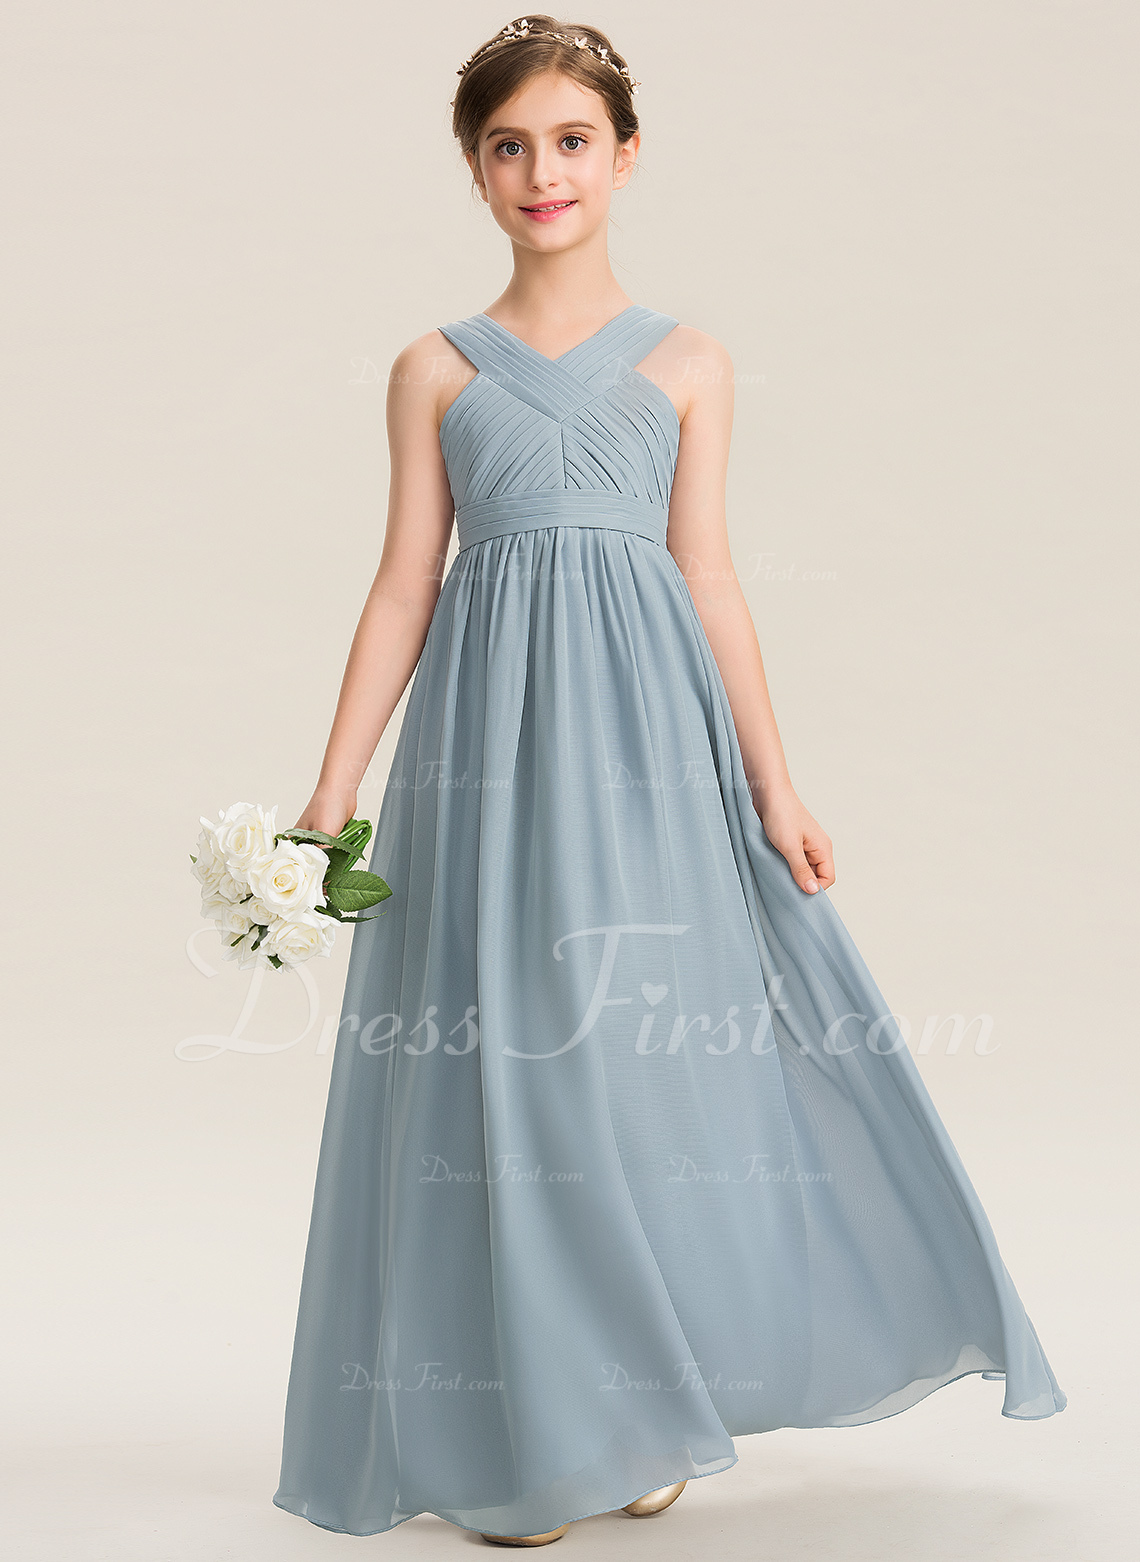 a4e4f36da0fb Loading zoom. Loading. Color: Steel Blue. A-Line V-neck Floor-Length  Chiffon Junior Bridesmaid Dress With Ruffle (009165011)